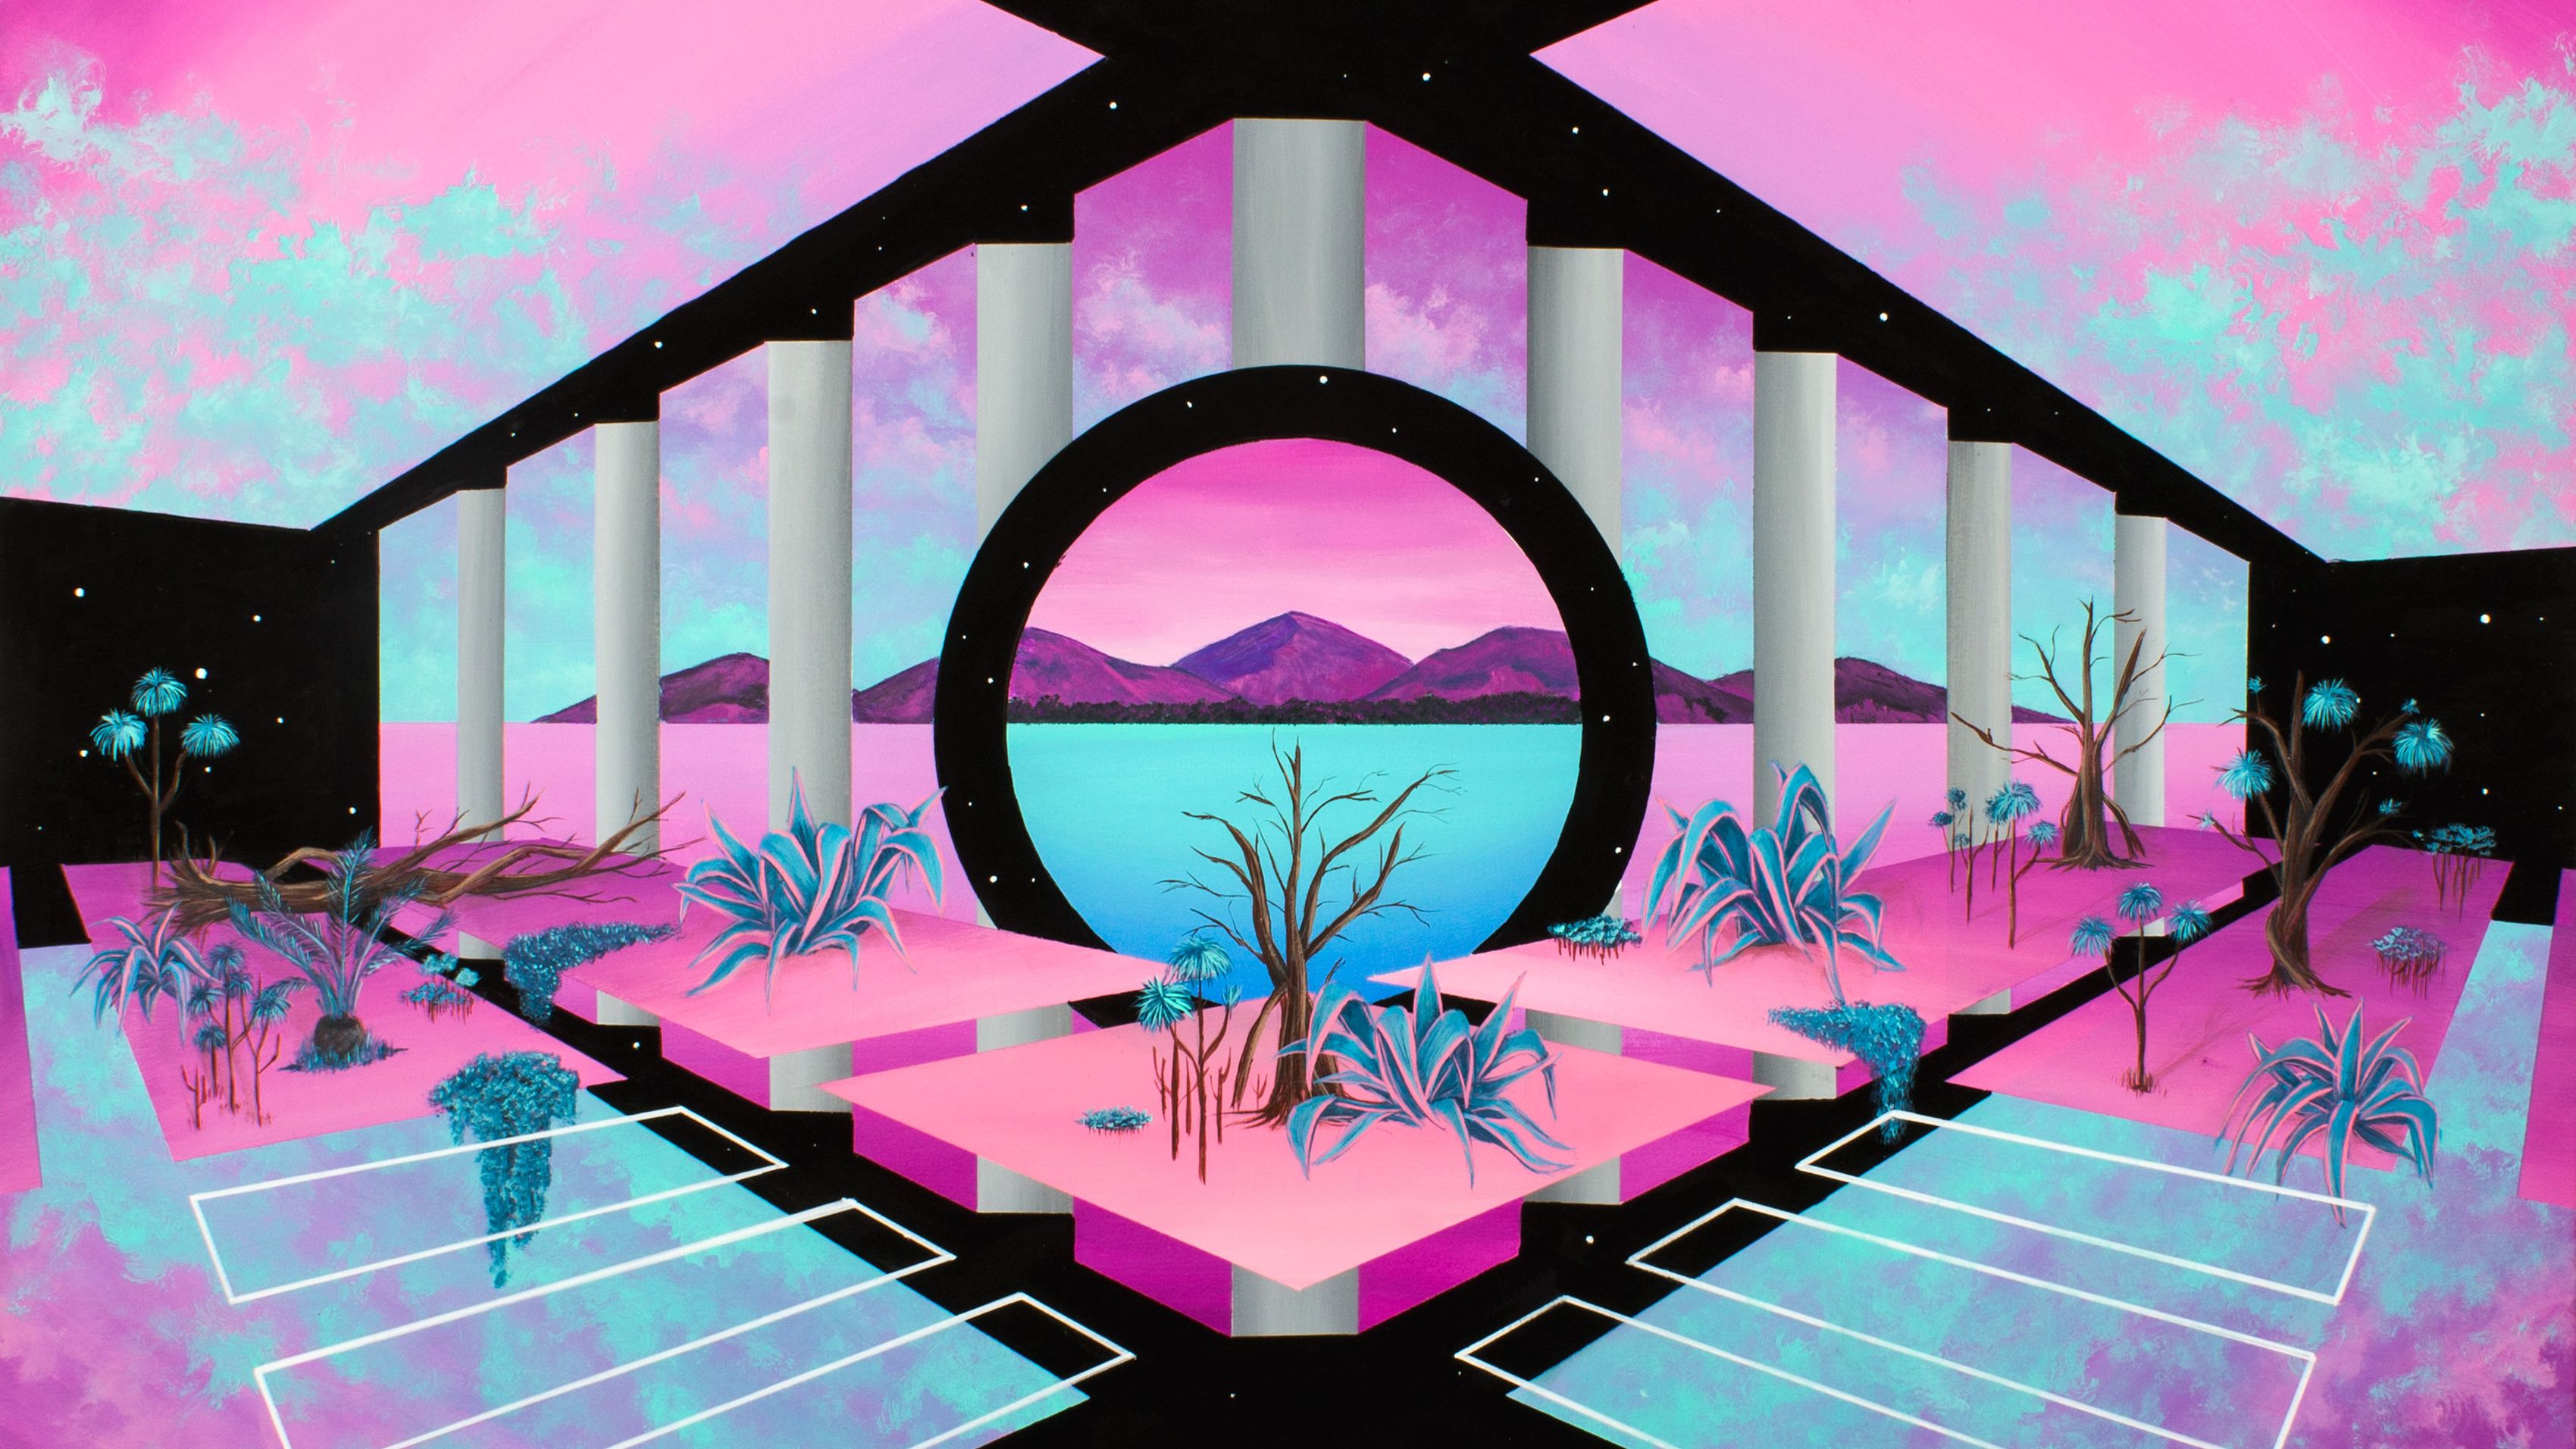 General 3399x1912 retrowave Retrowave vaporwave abstract pink